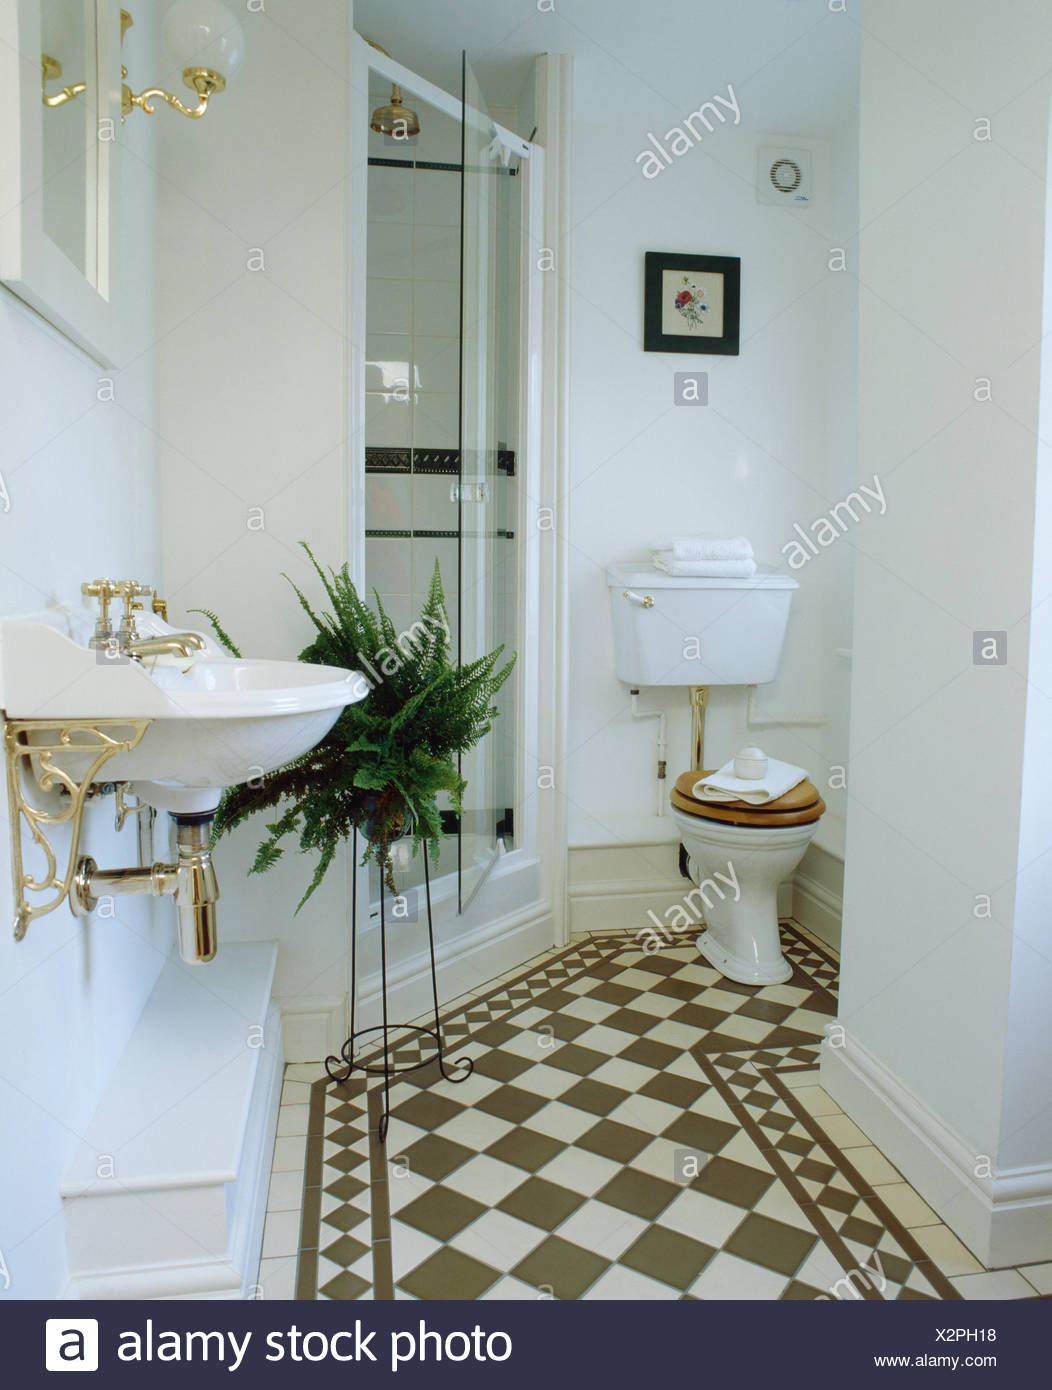 Glass shower doors stock photos glass shower doors stock images blackwhite chequerboard flooring in white bathroom with boston fern on stand beside glass shower planetlyrics Image collections